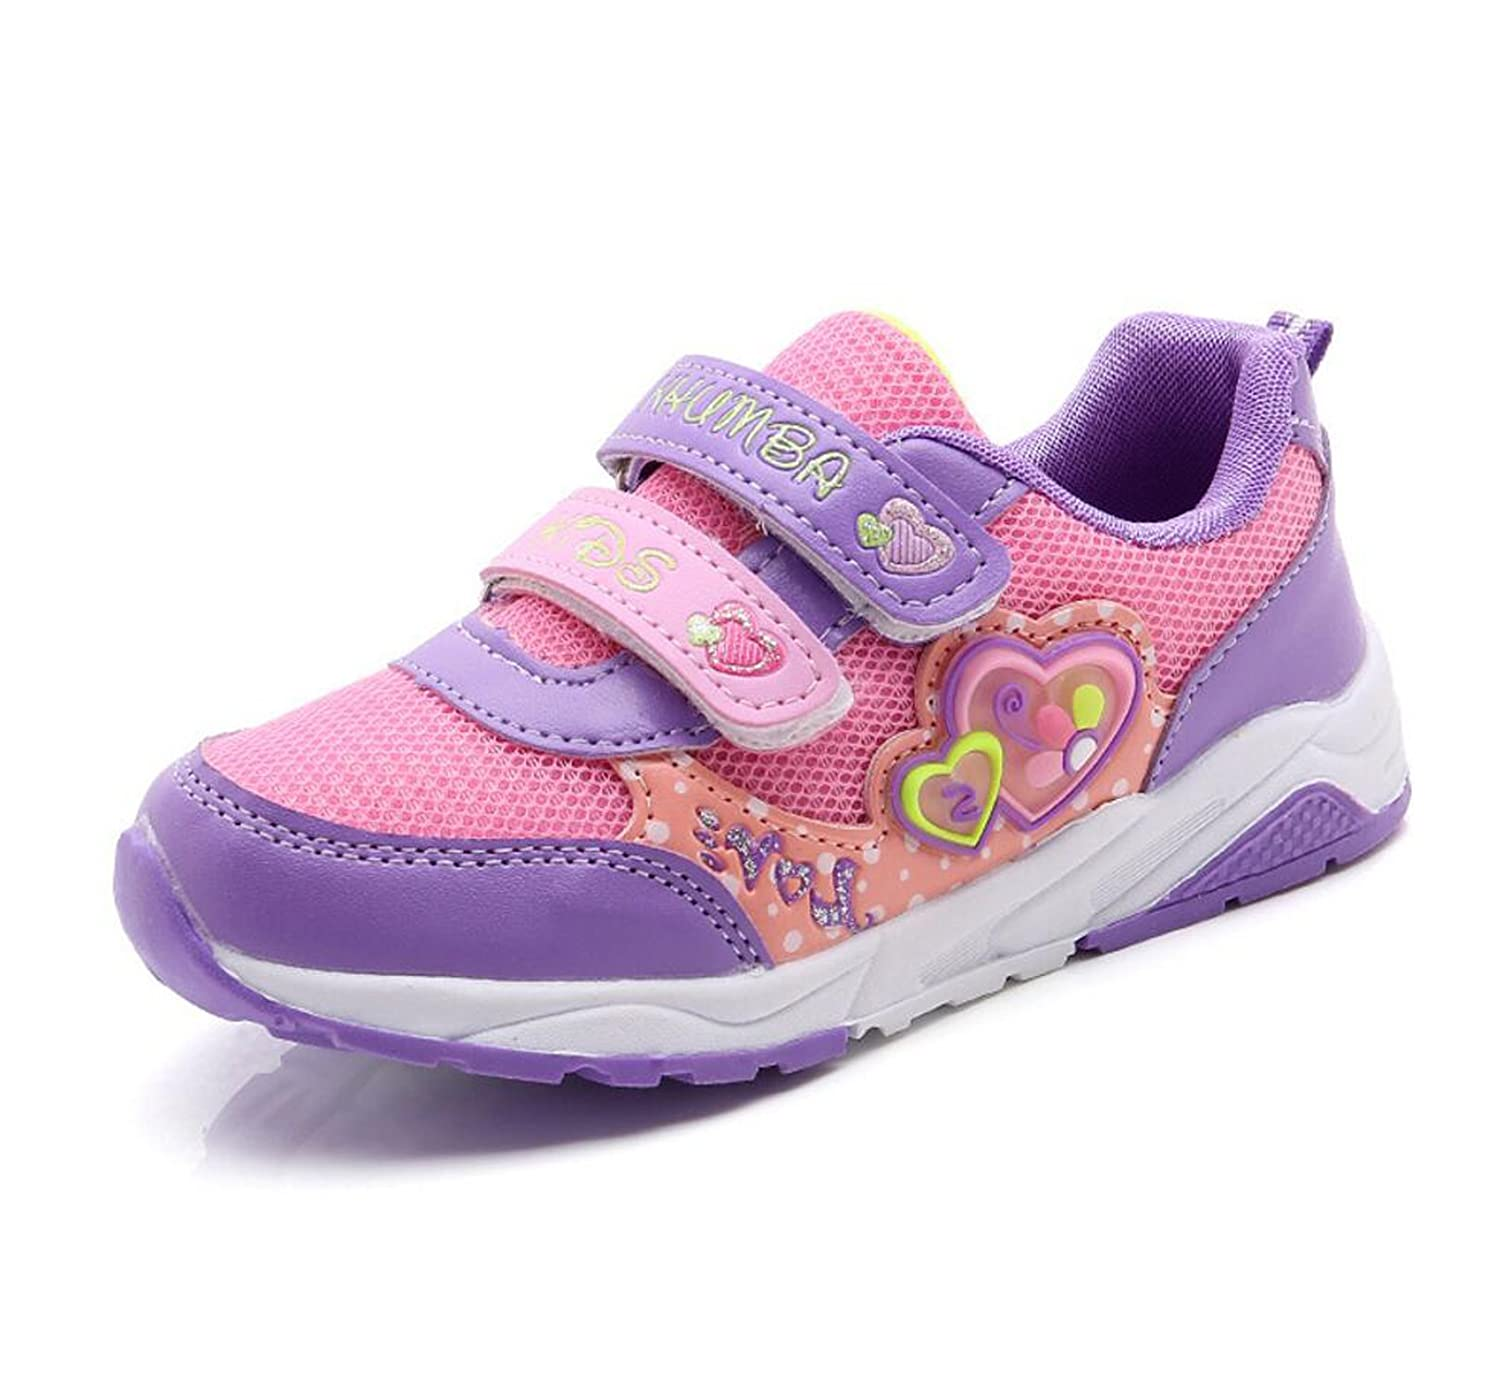 Otamise Girls Sneakers Kids Sport Athletic Running Shoes Lightweight Walking Shoes